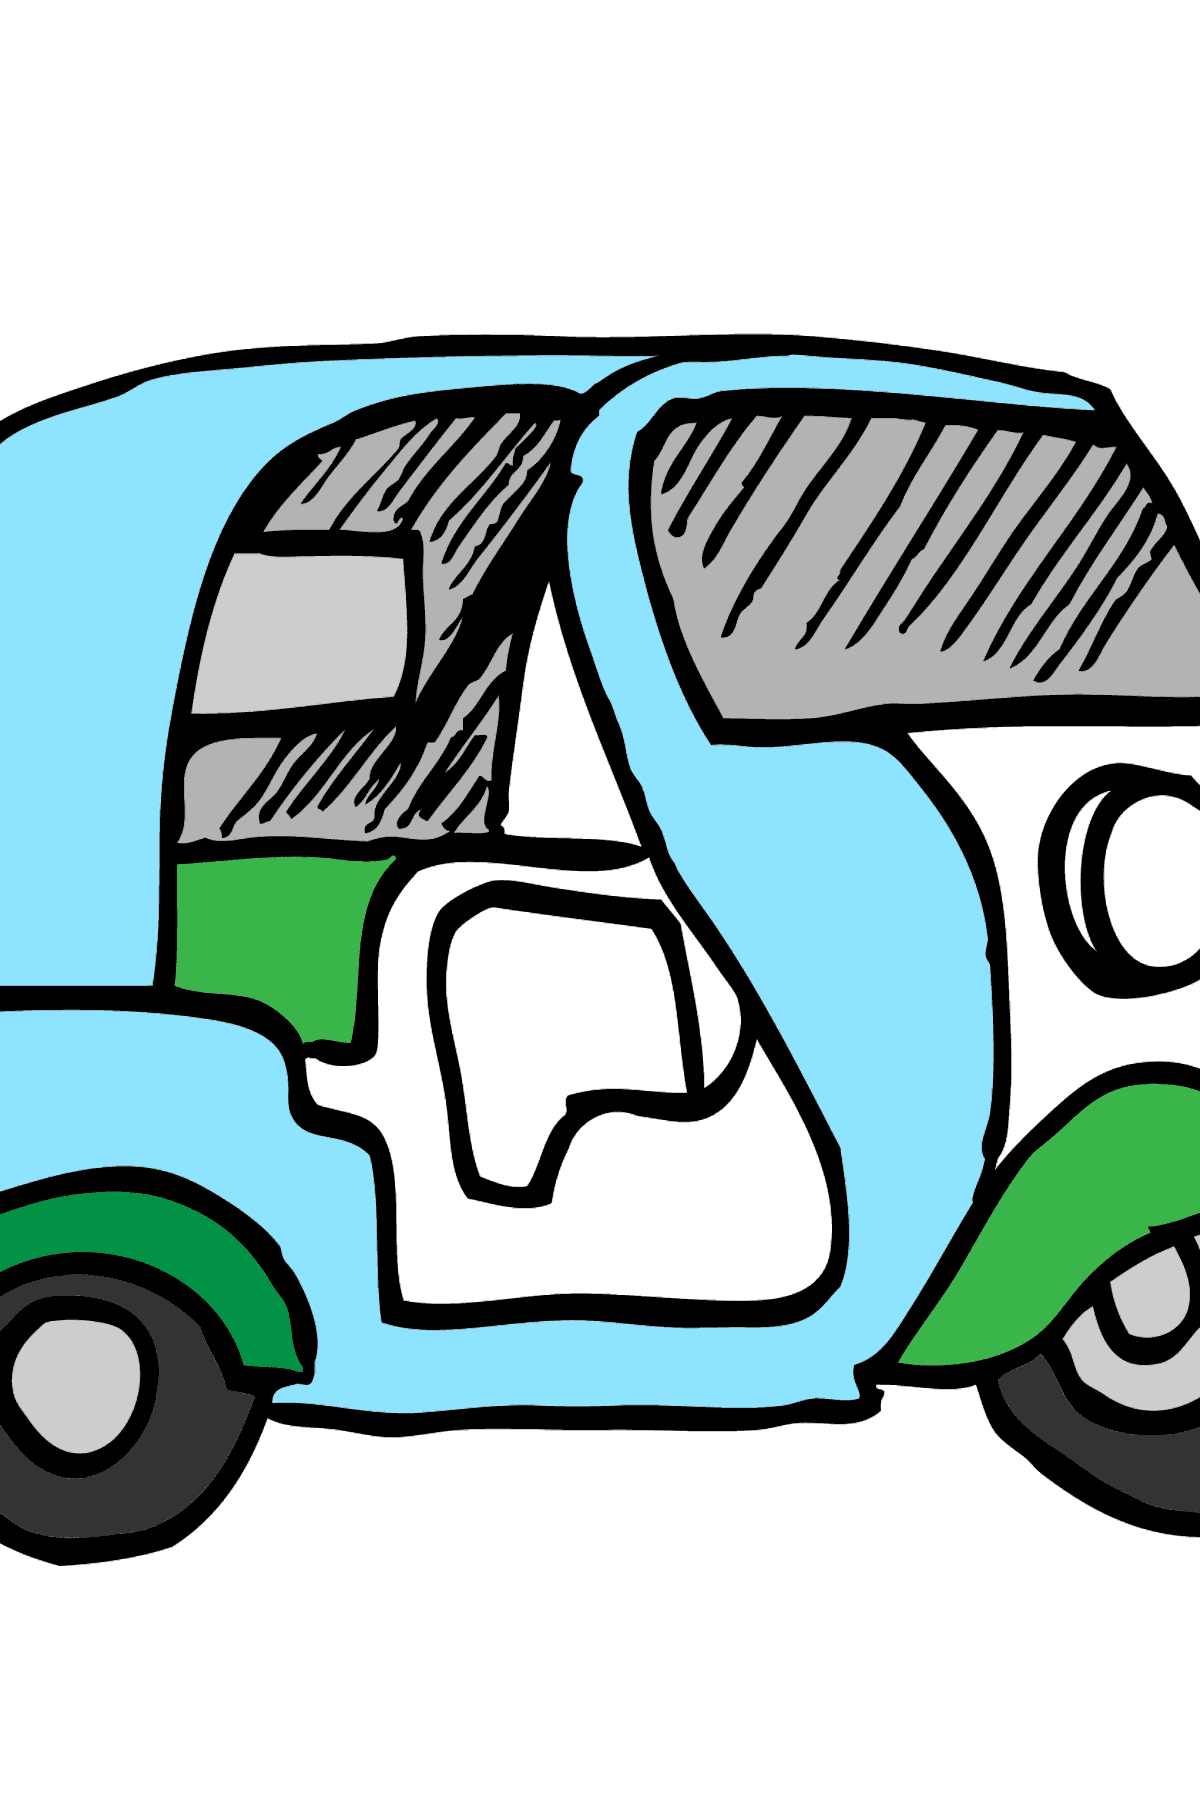 Coloring Page - A Moped is Carrying Mail - Coloring Pages for Kids